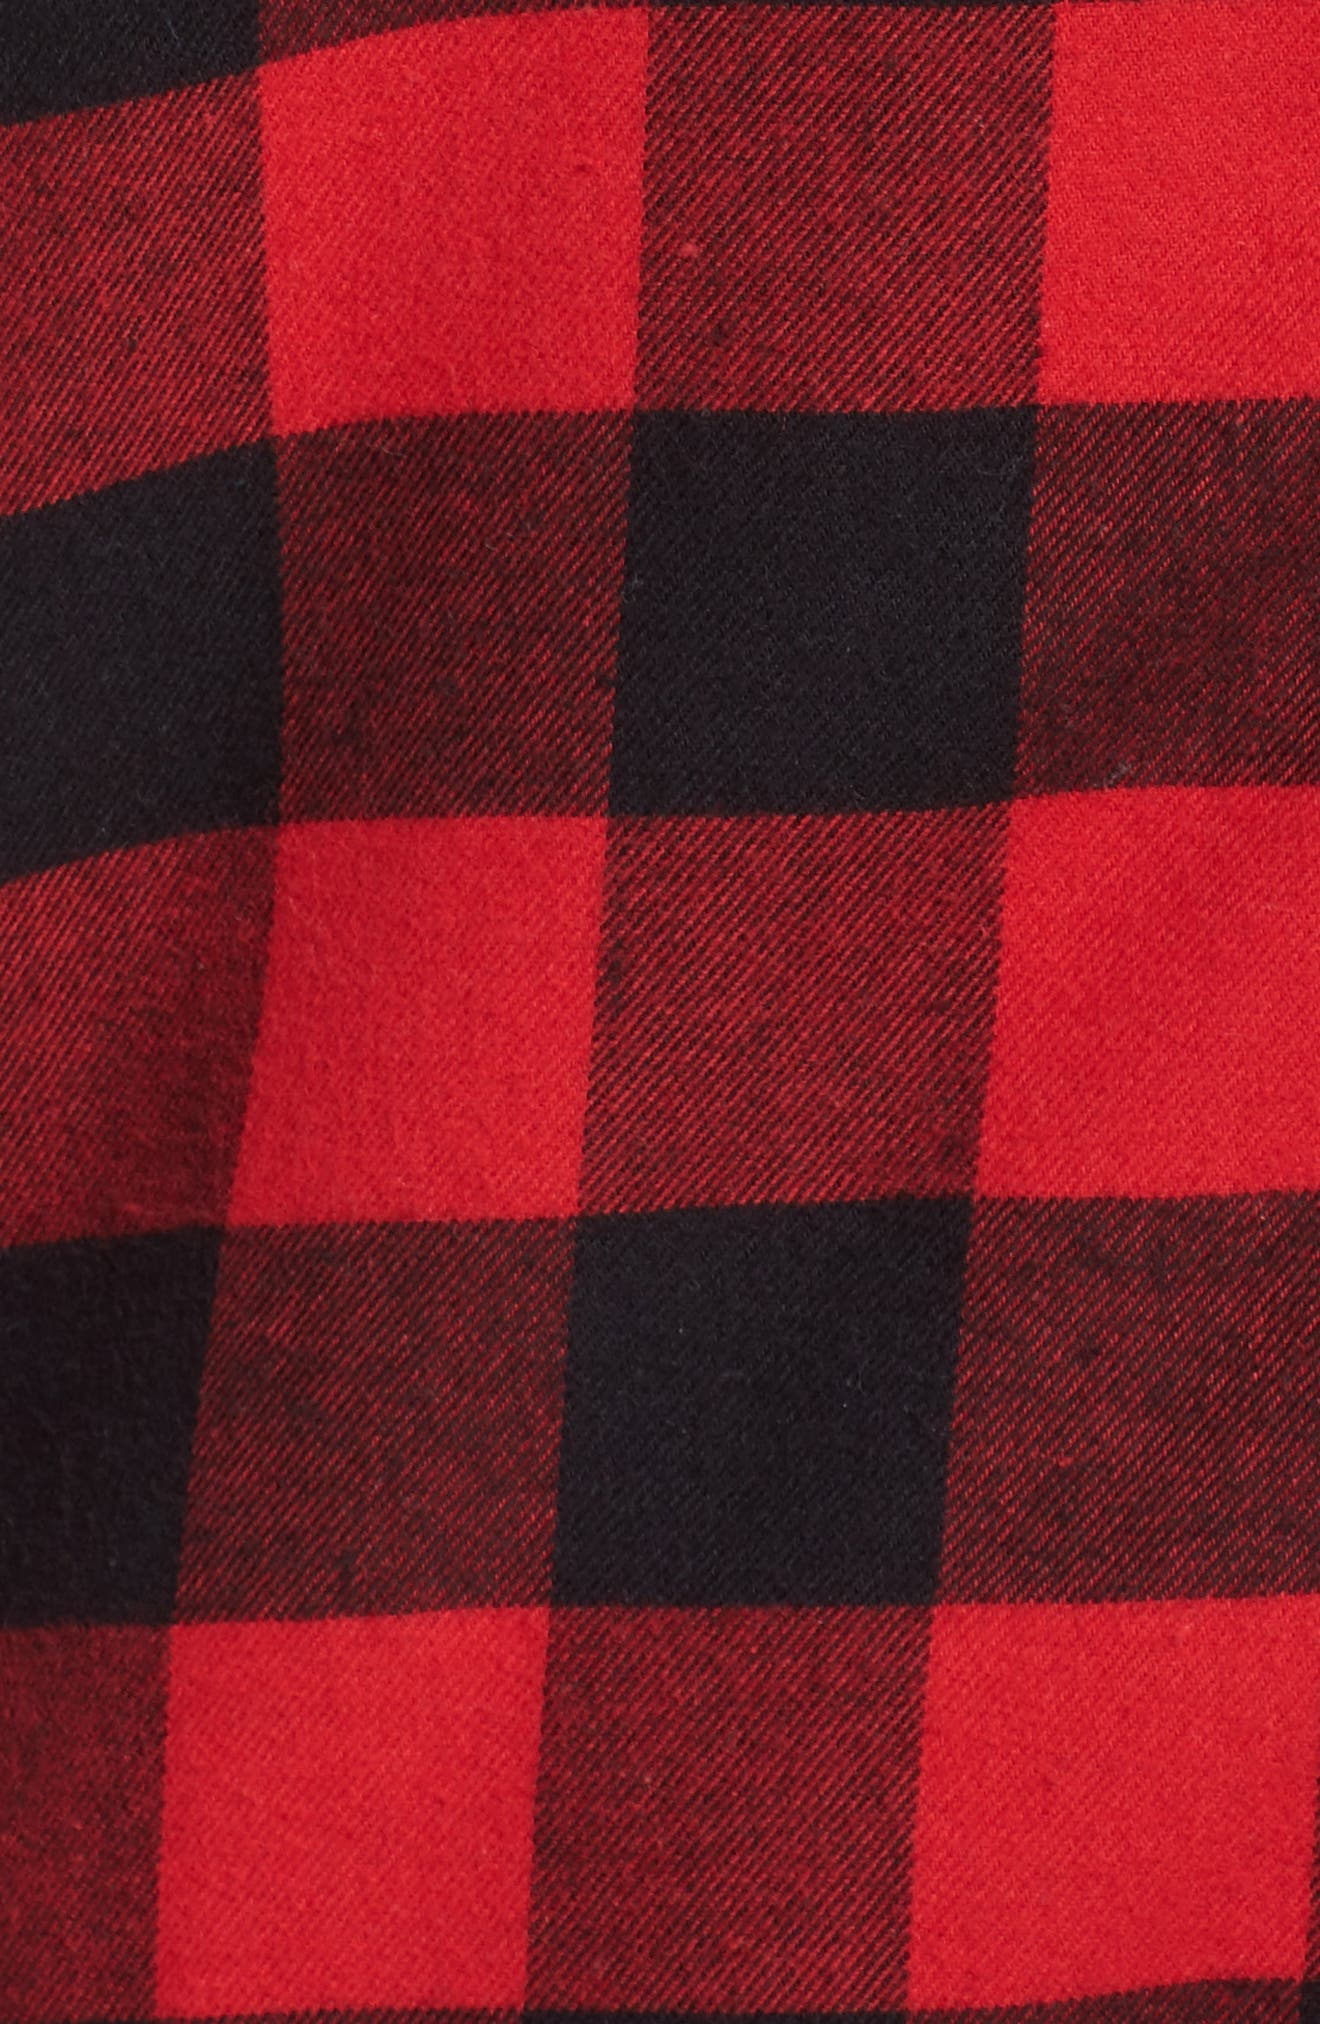 Flannel Pajamas,                             Alternate thumbnail 7, color,                             Red Pepper Buffalo Check